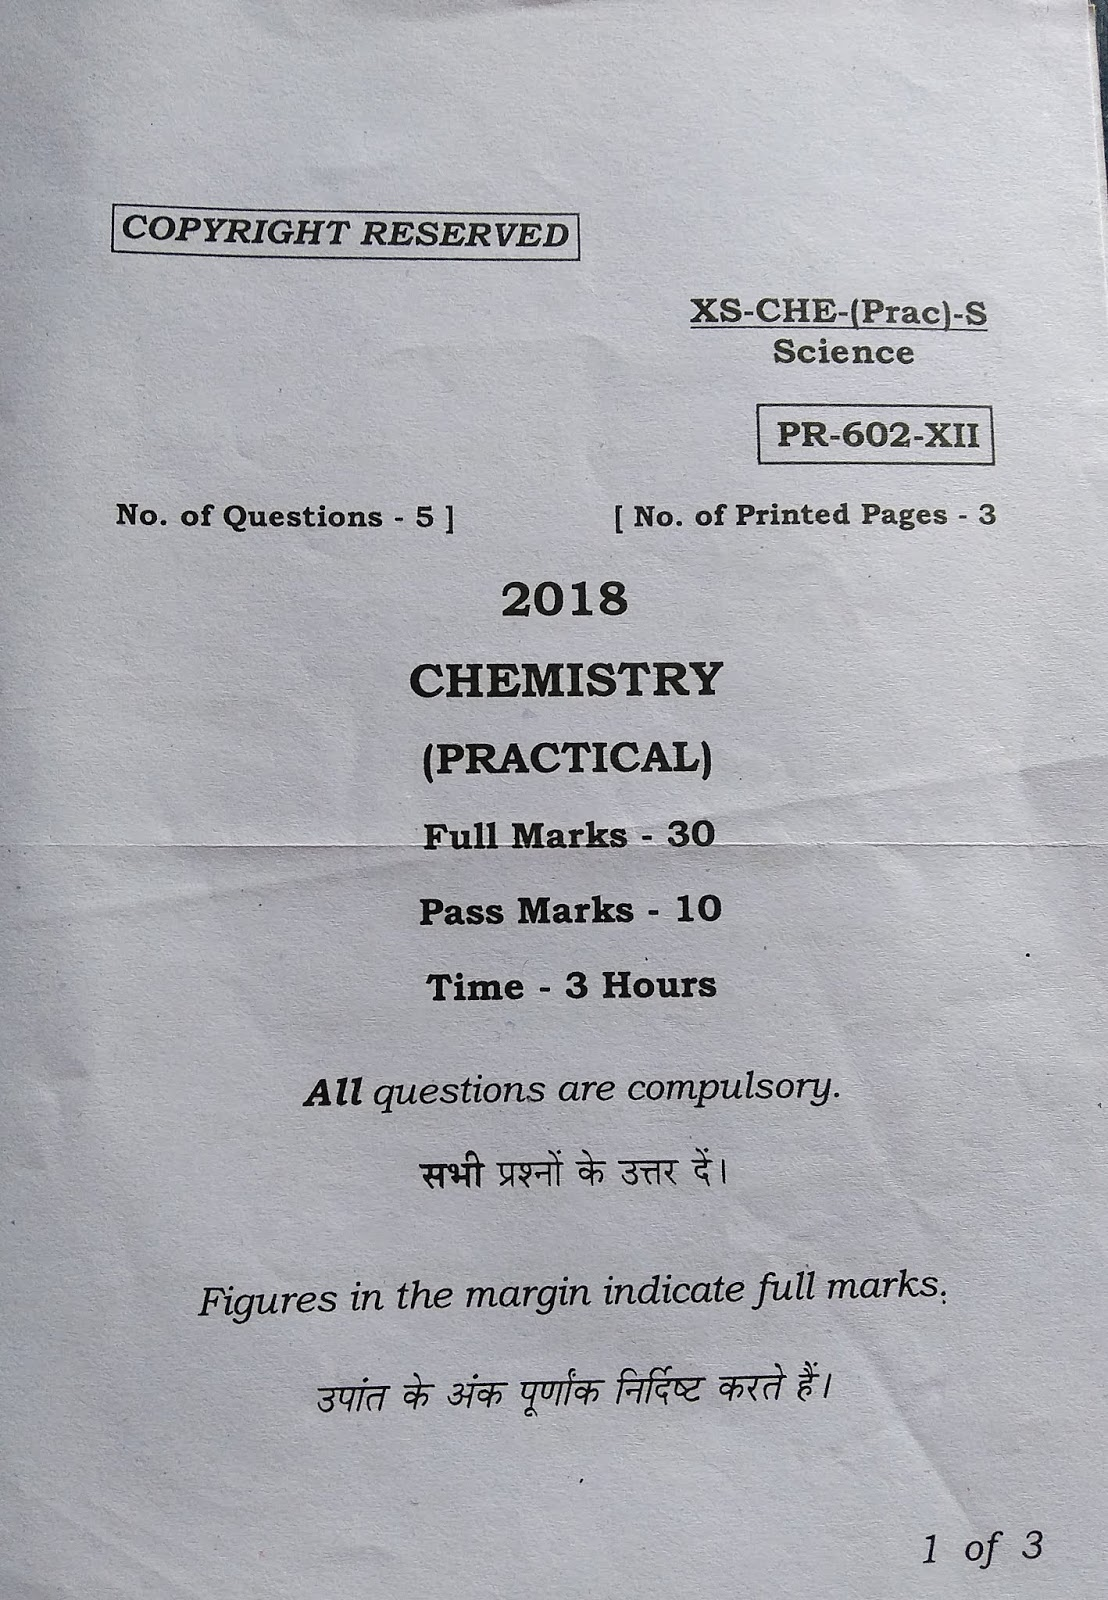 chemistry practical exam questions